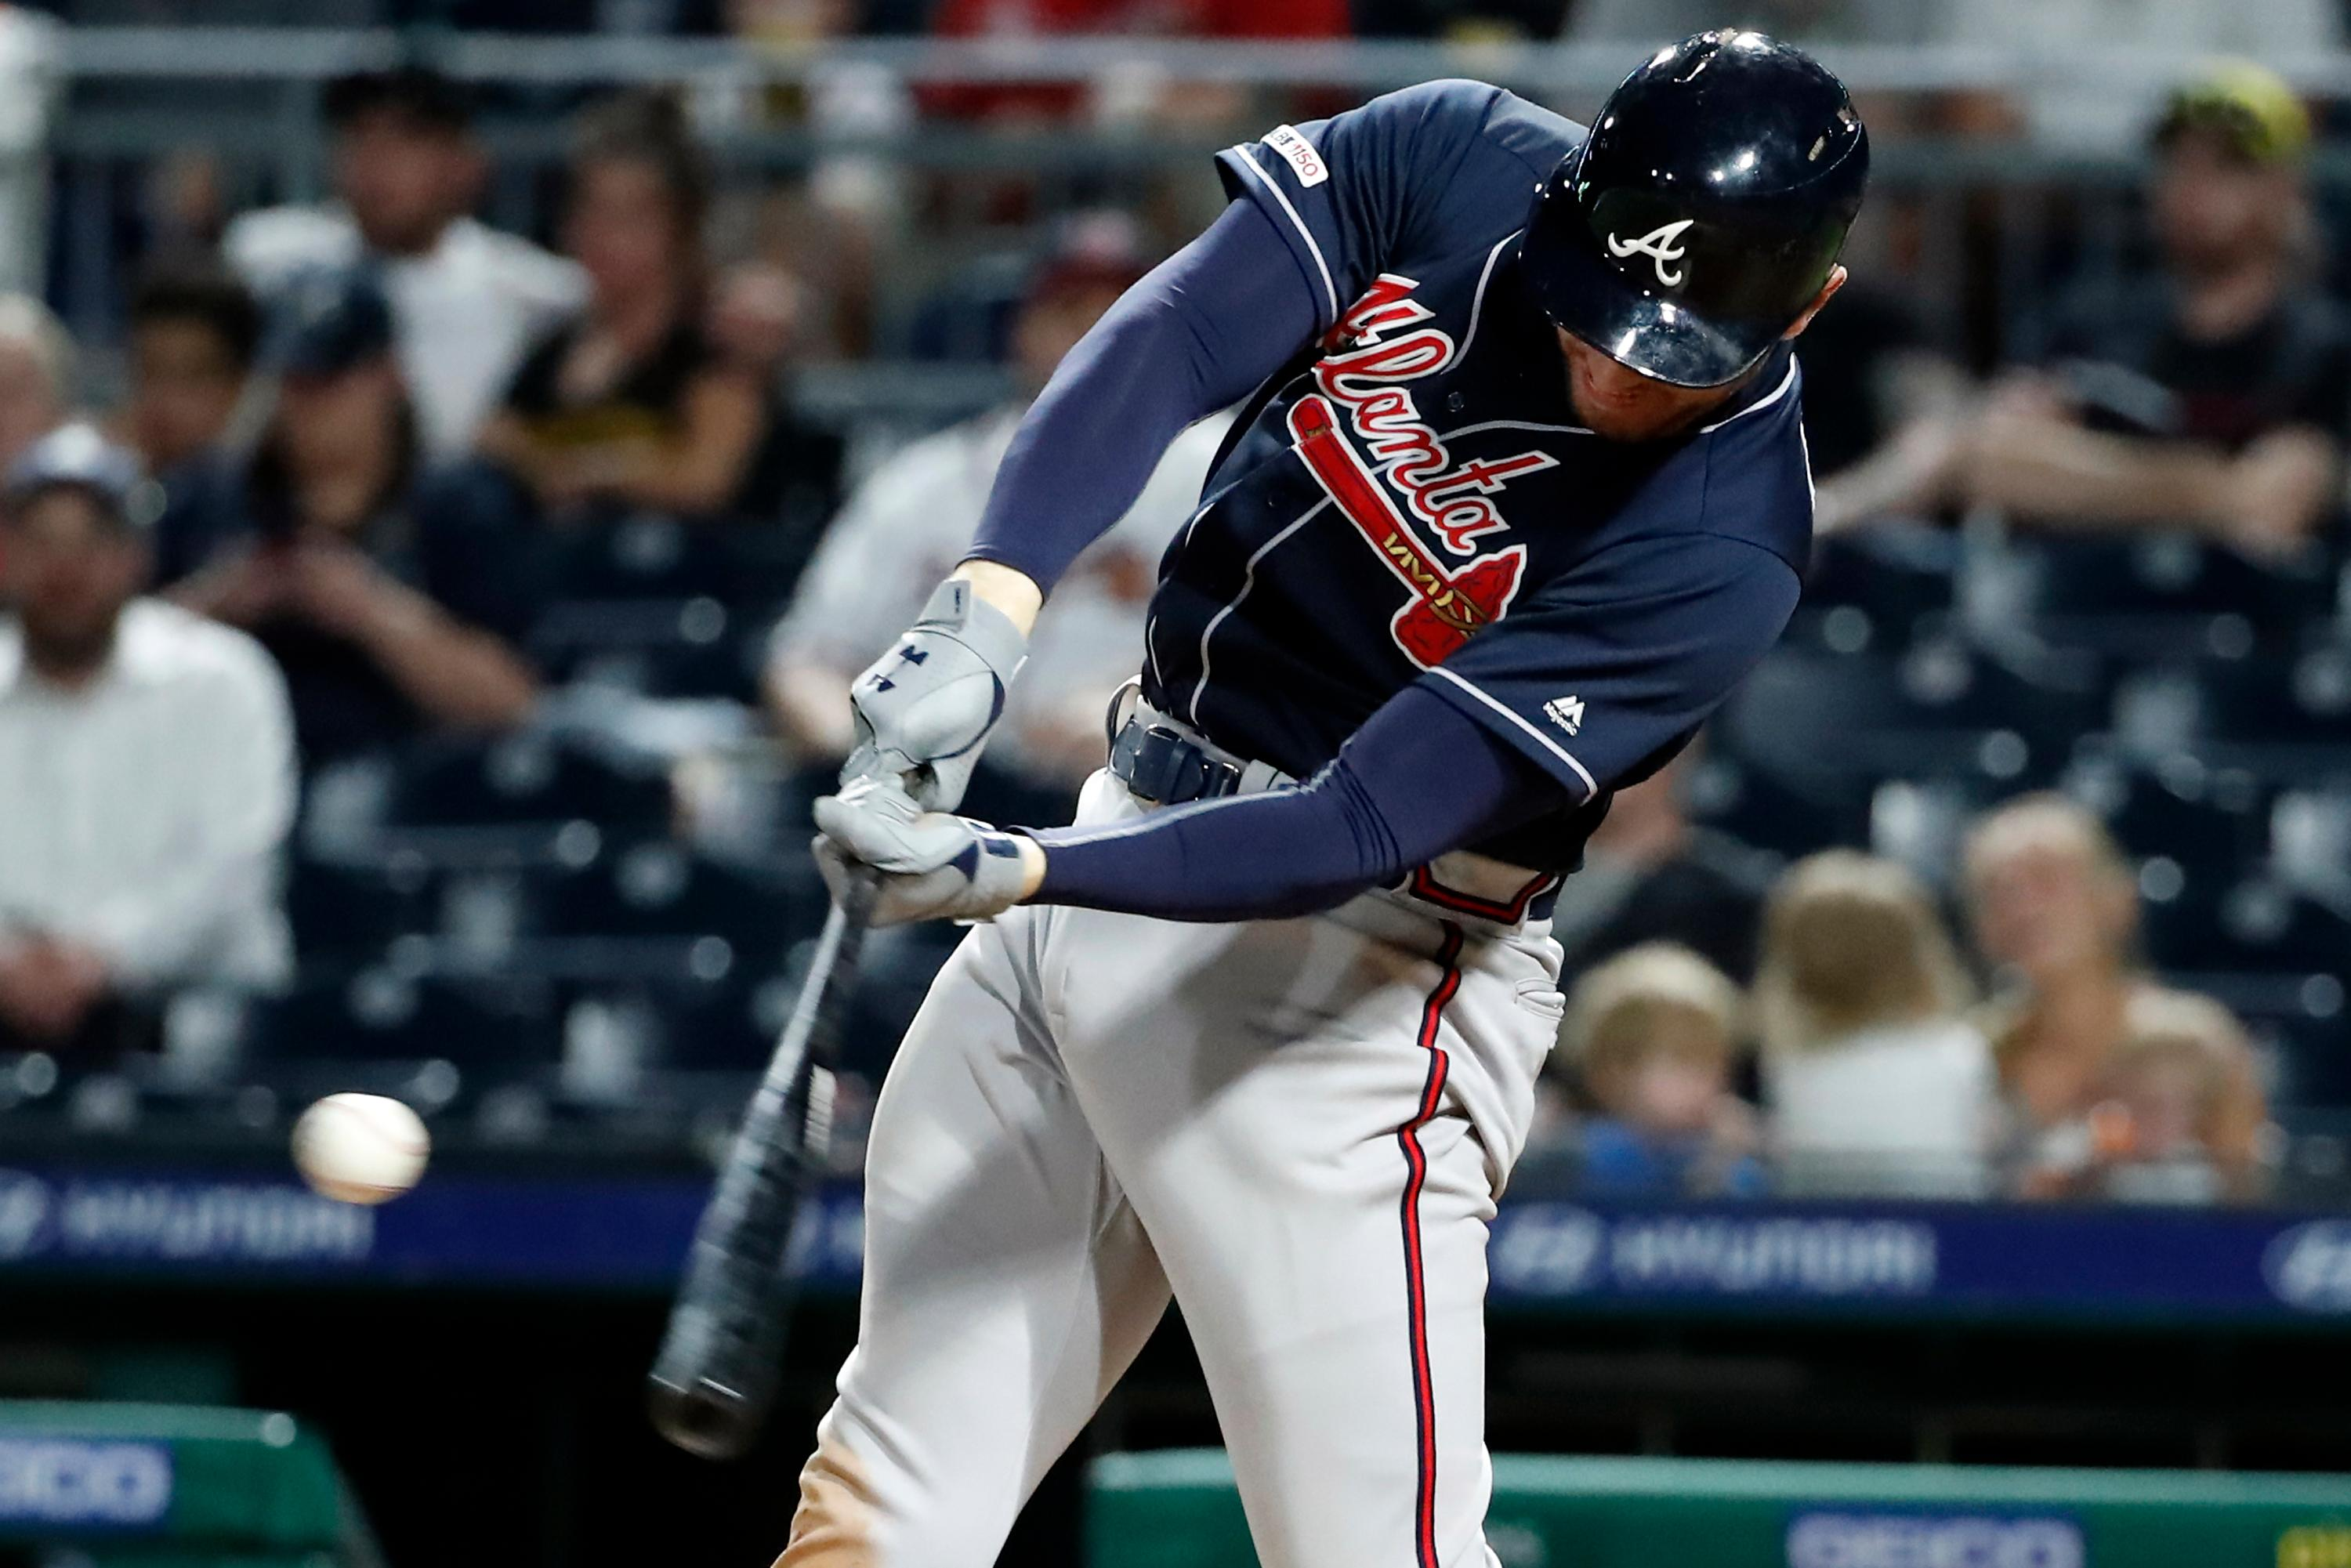 Atlanta Braves' Freddie Freeman hits a two-run home run off Pittsburgh Pirates' Rookie Davis during the ninth inning of a baseball game in Pittsburgh, Tuesday, June 4, 2019. The Braves won 12-5. (AP Photo/Gene J. Puskar)